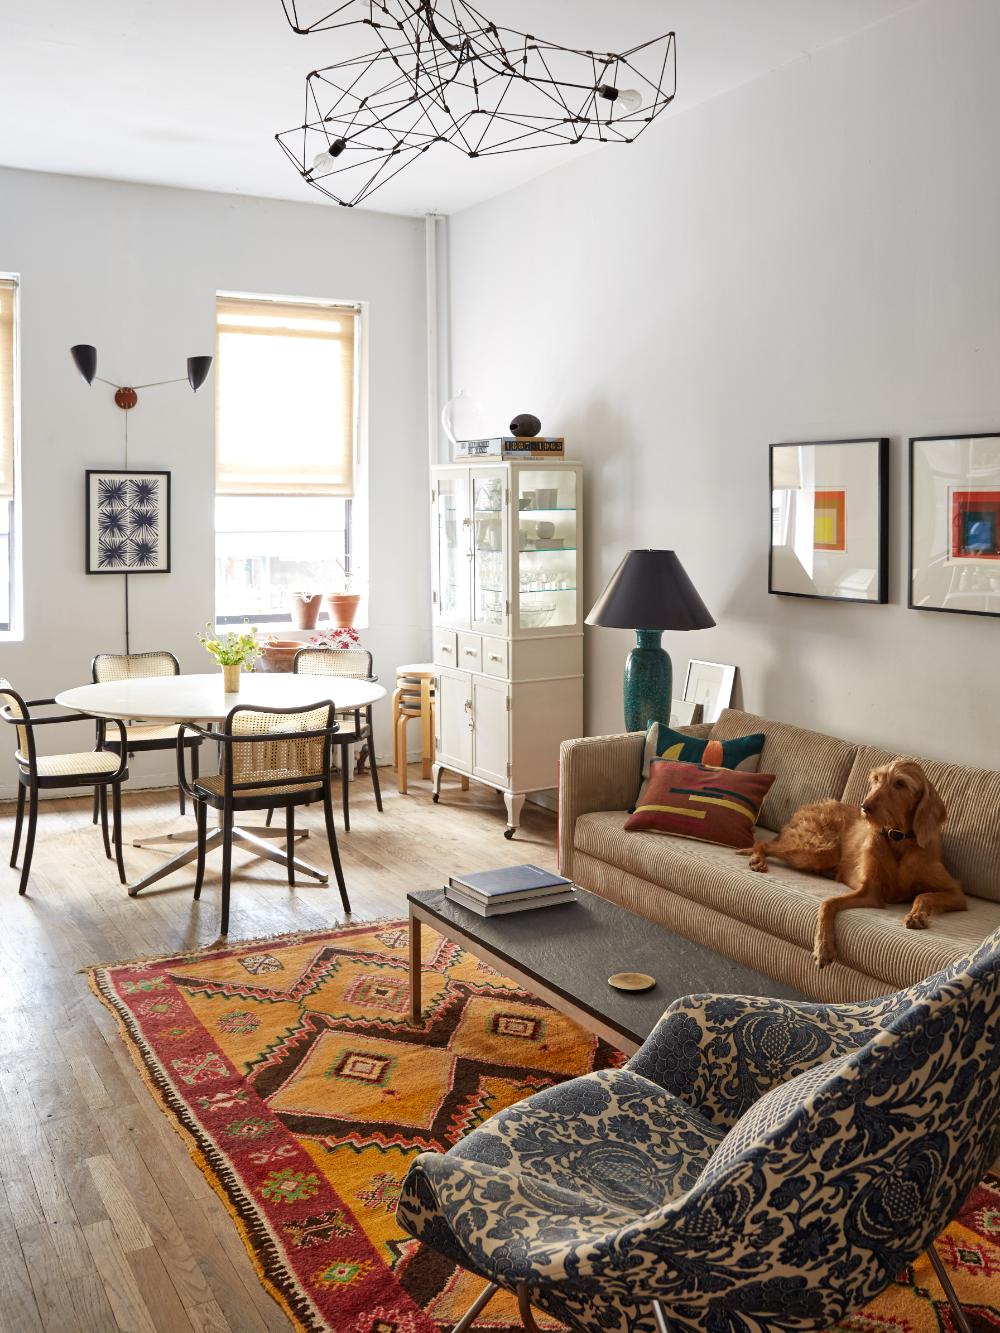 Expert Advice: How to Build a Dog-Proof Home | Living room ...